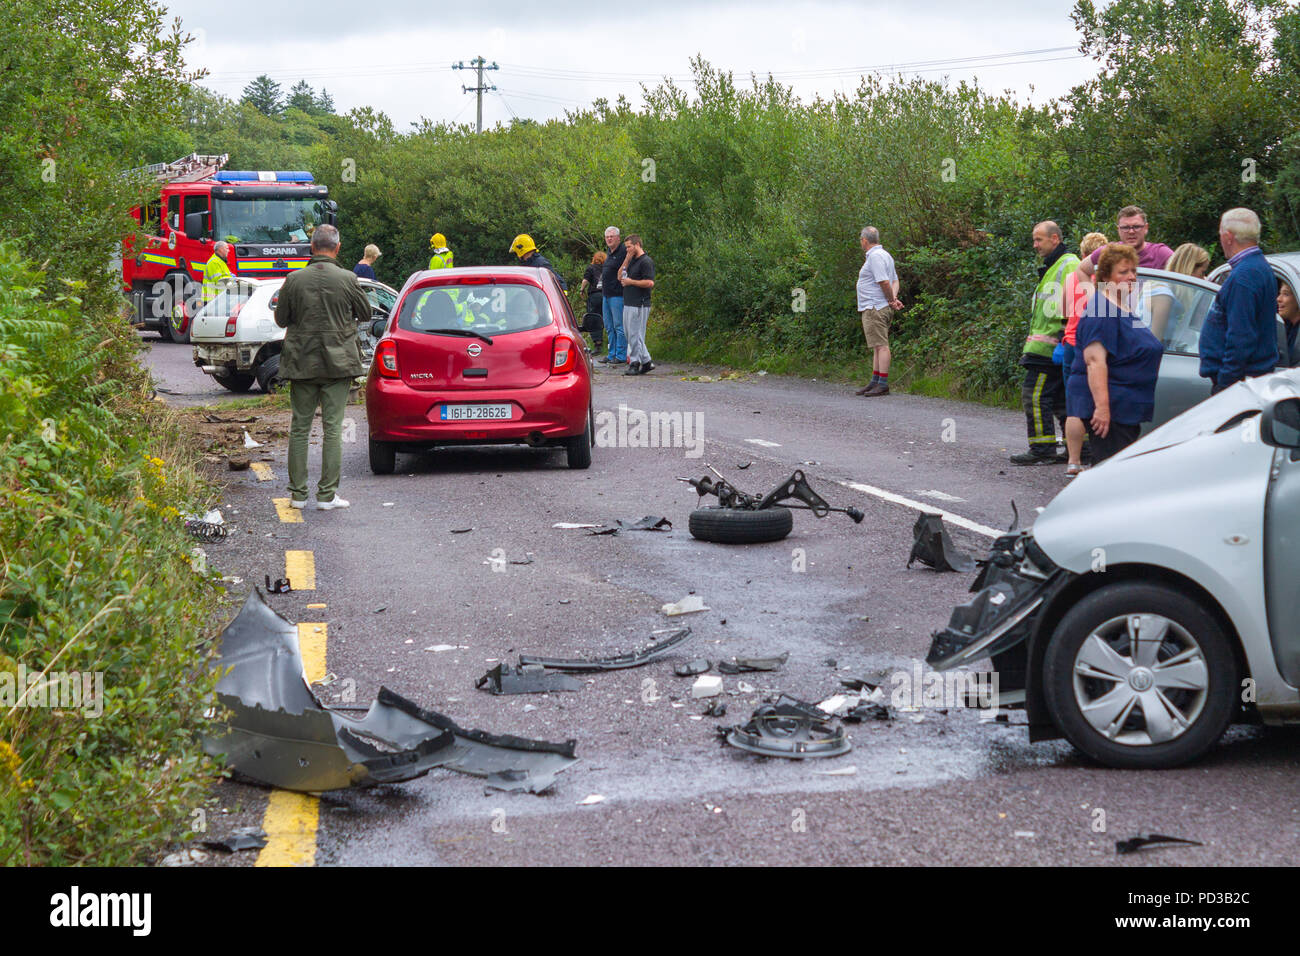 Ballydehob, West Cork, Ireland. 6th August, 2018. The main N71 between Ballydehob and Skibbereen was blocked this afternoon due to a multi vehicle accident. Fire Appliances from Skibbereen and Schull were in attendance very quickly as were the Ambulances from the local area. Miraculously only minor injuries were sustained with 1 person sent on to hospital. Credit: aphperspective/Alamy Live News Stock Photo